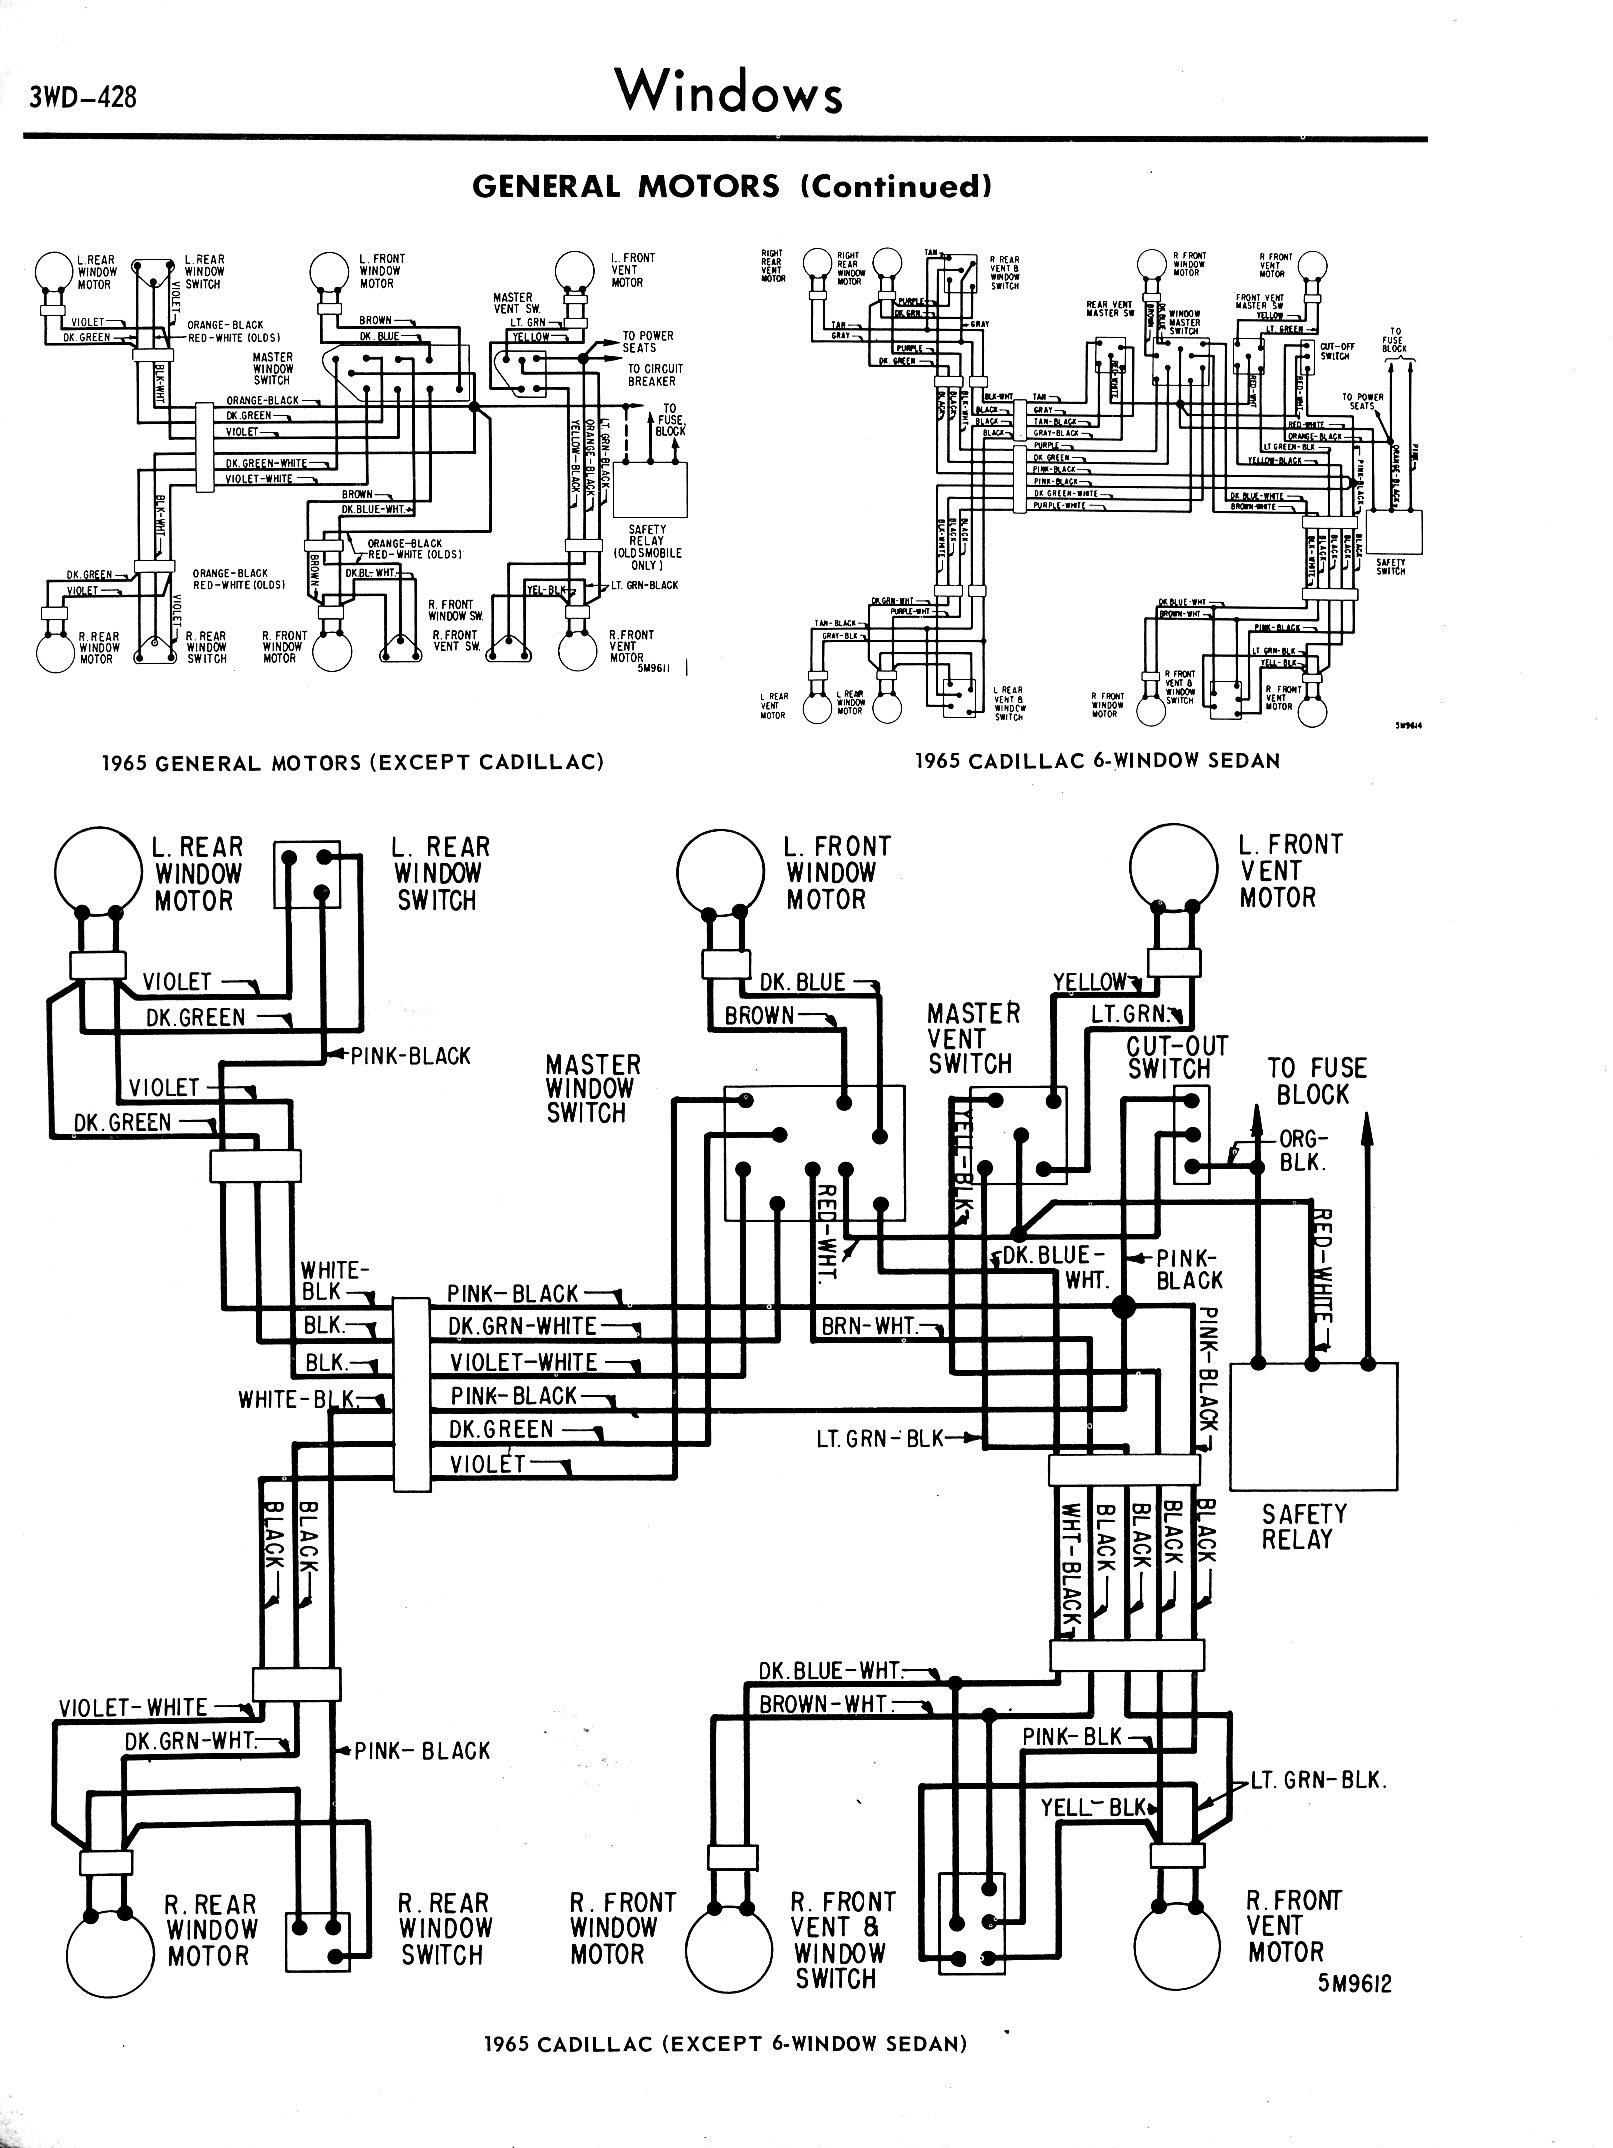 69 Chevelle Power Window Wiring Diagram Not Lossing For Chevy Diagrams Rh Wizard Com 1971 Dash 1969